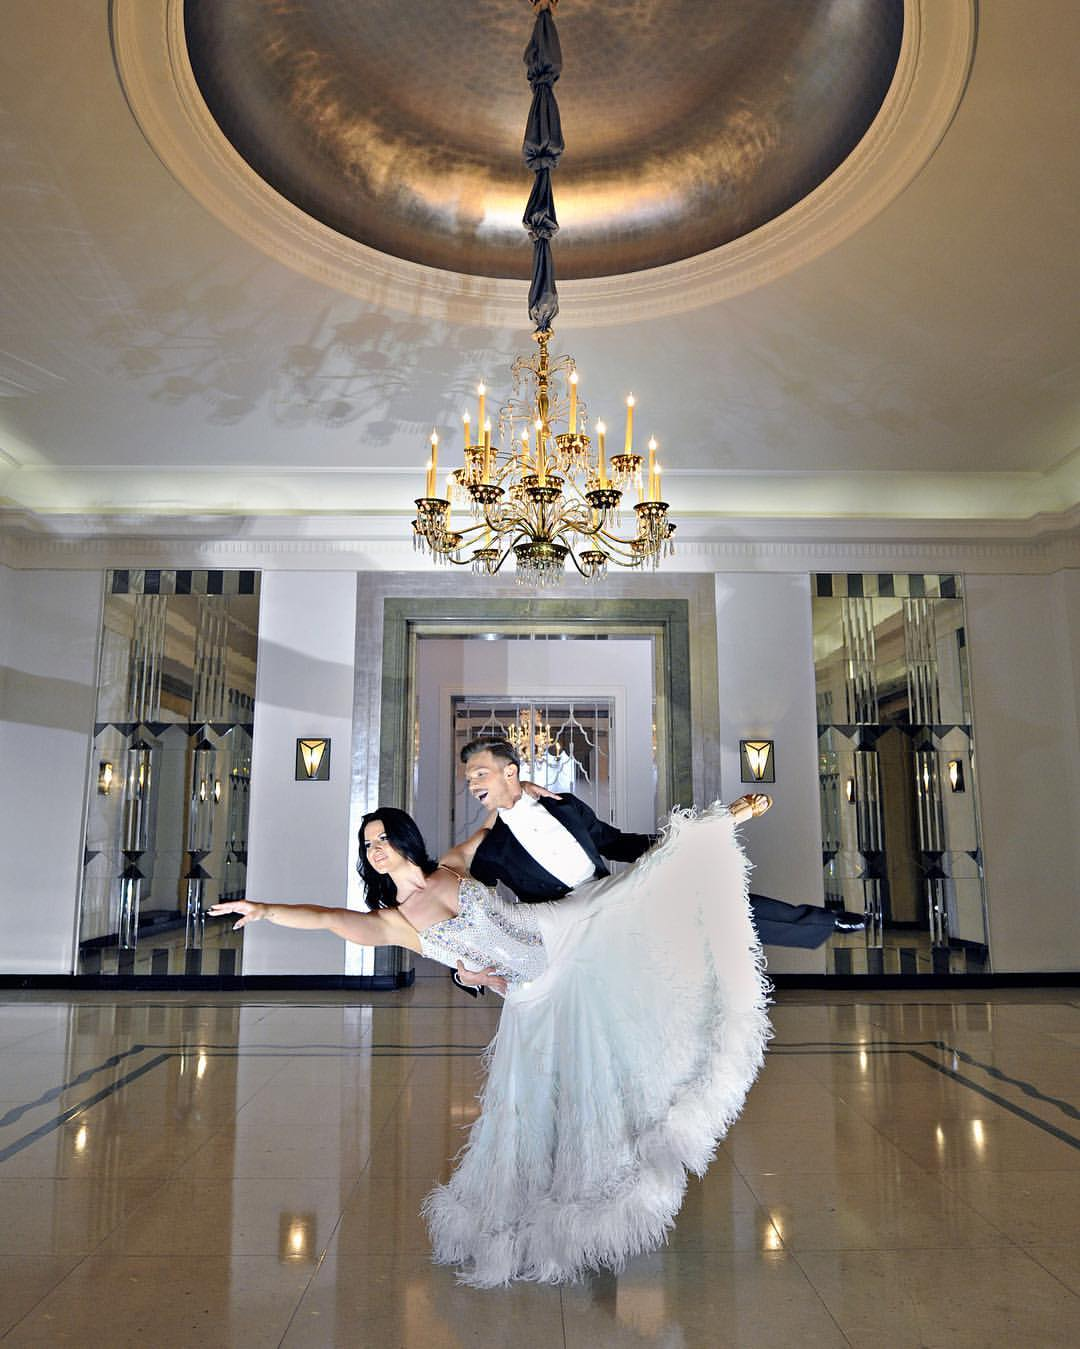 Award-winning Ballroom and Latin Dancer | Teacher | Choreographer | Dance Lessons | London